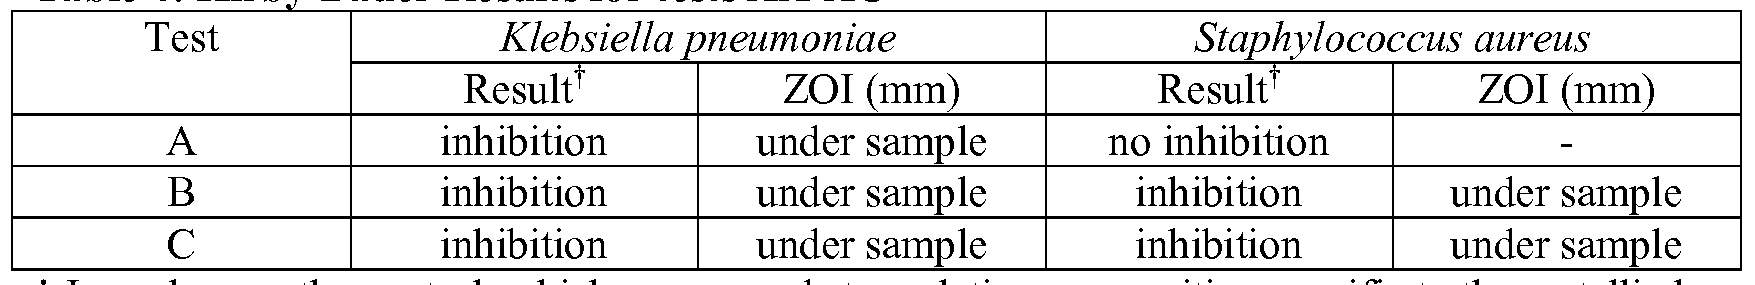 Wo2009120784a2 Electrodeposited Metallic Finishes Including Antimicrobial Agents Google Patents